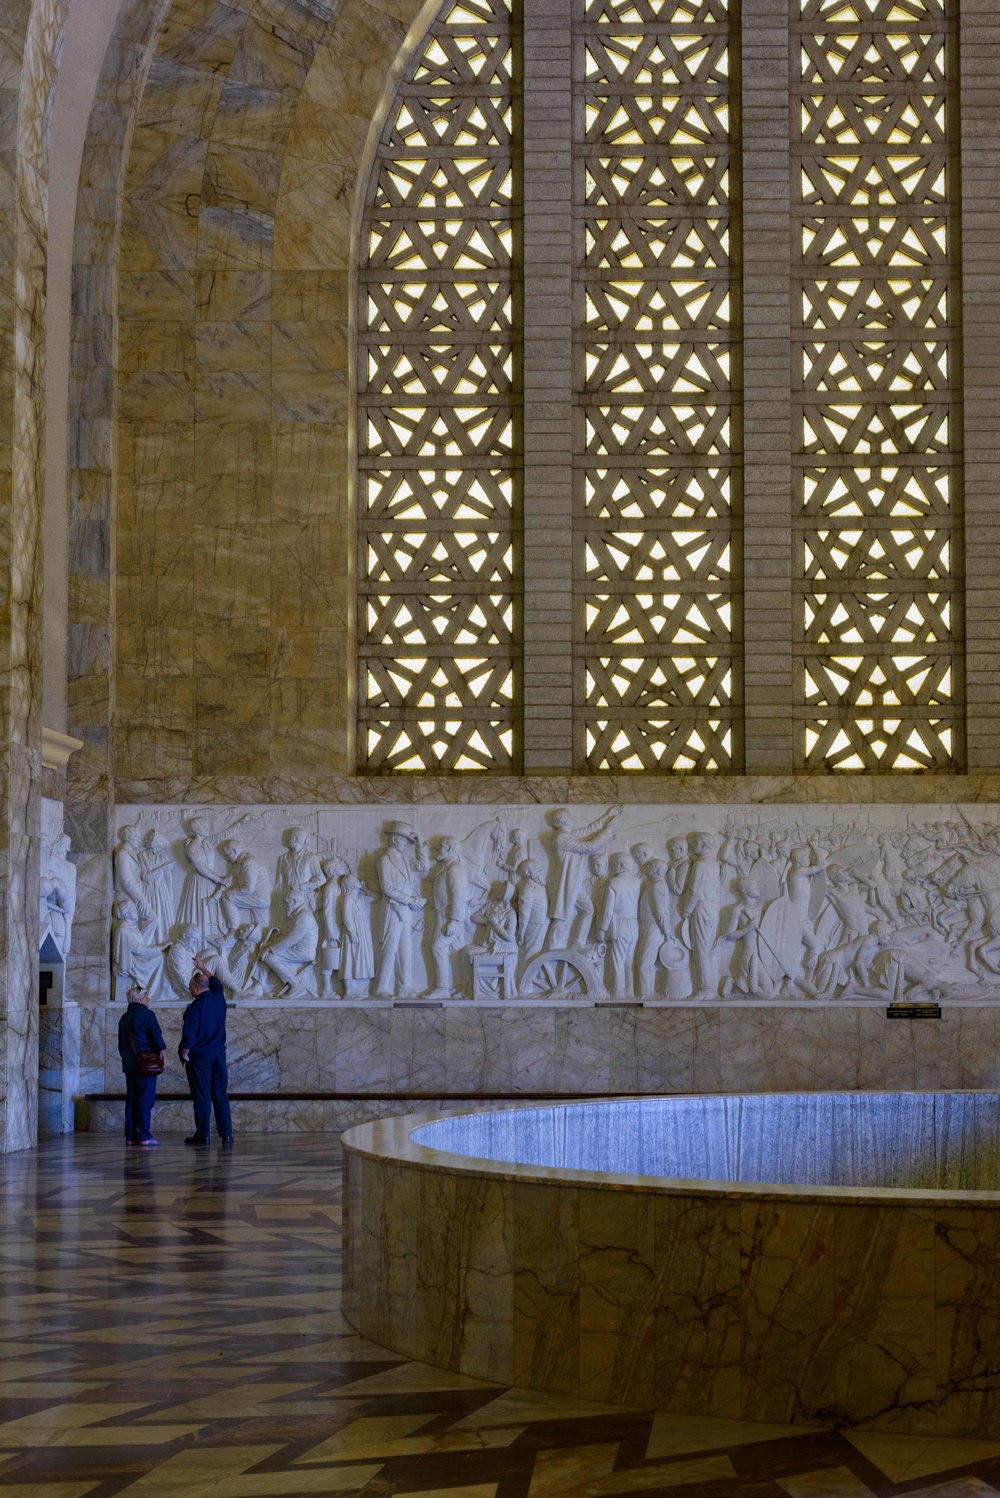 It is the biggest marble frieze in the world.